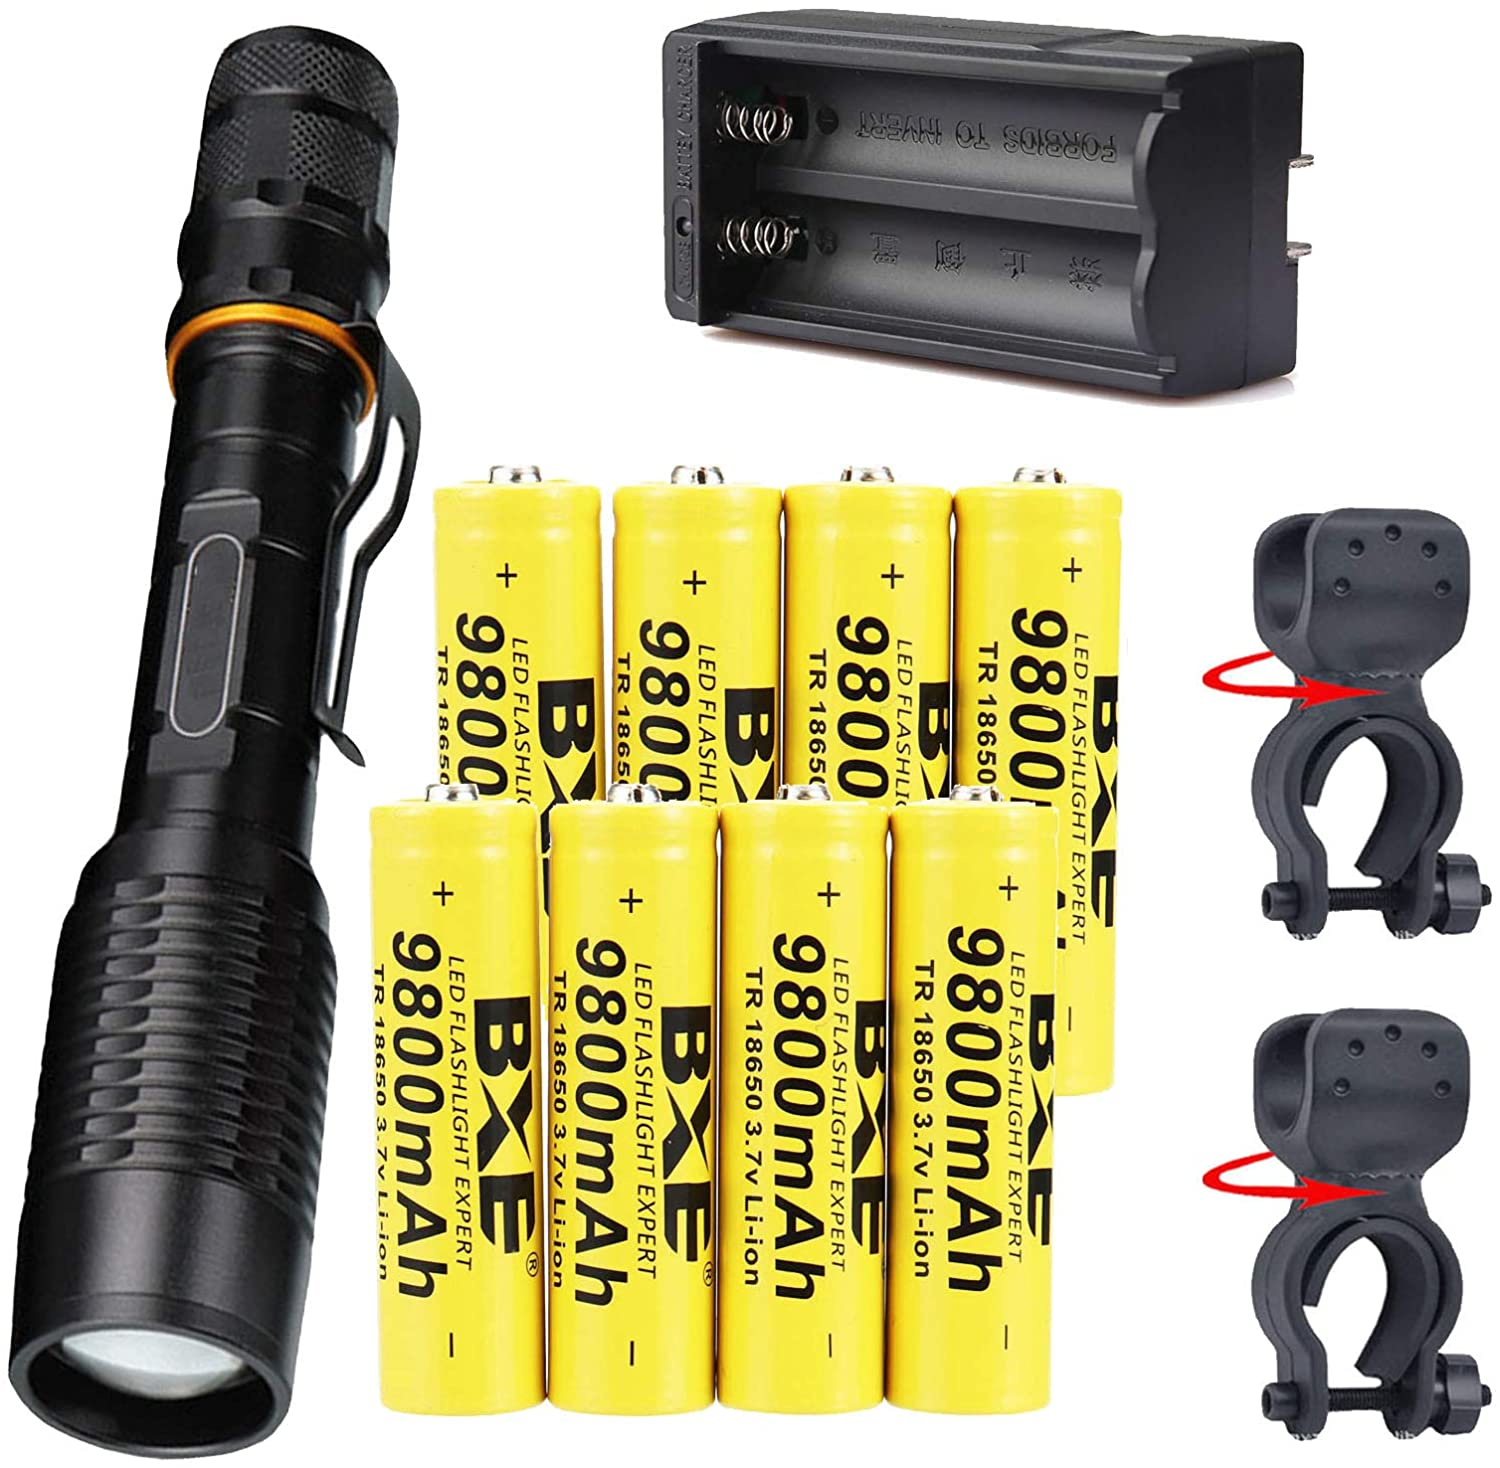 5000 Lumen Rechargeable Tactical Flashlight,Super Bright Zoomable LED Flashlgiht for Hiking Hunting Camping Emergency Outdoor Sport